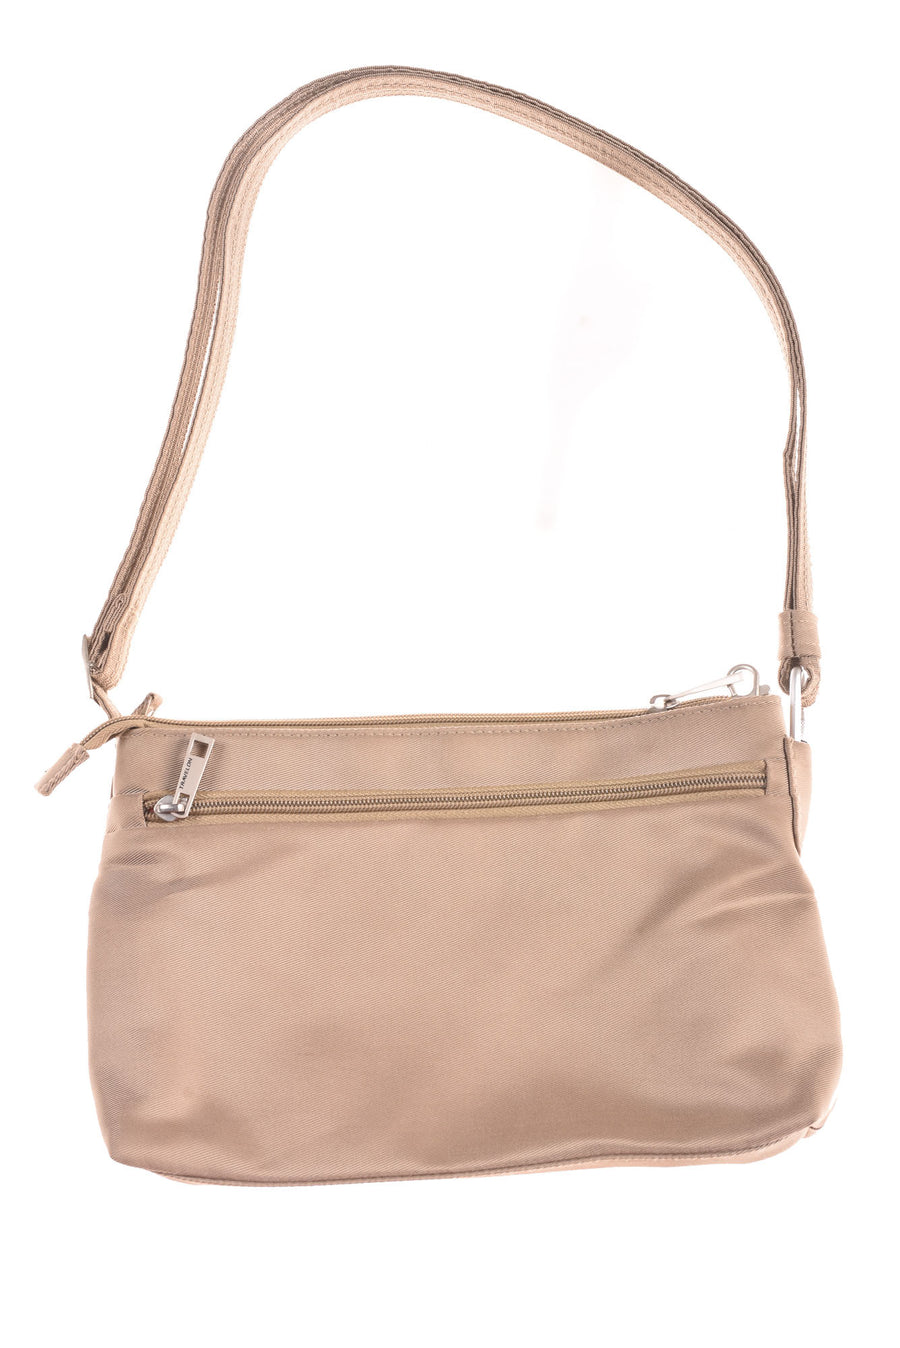 USED Travelon Women's Handbag N/A Taupe